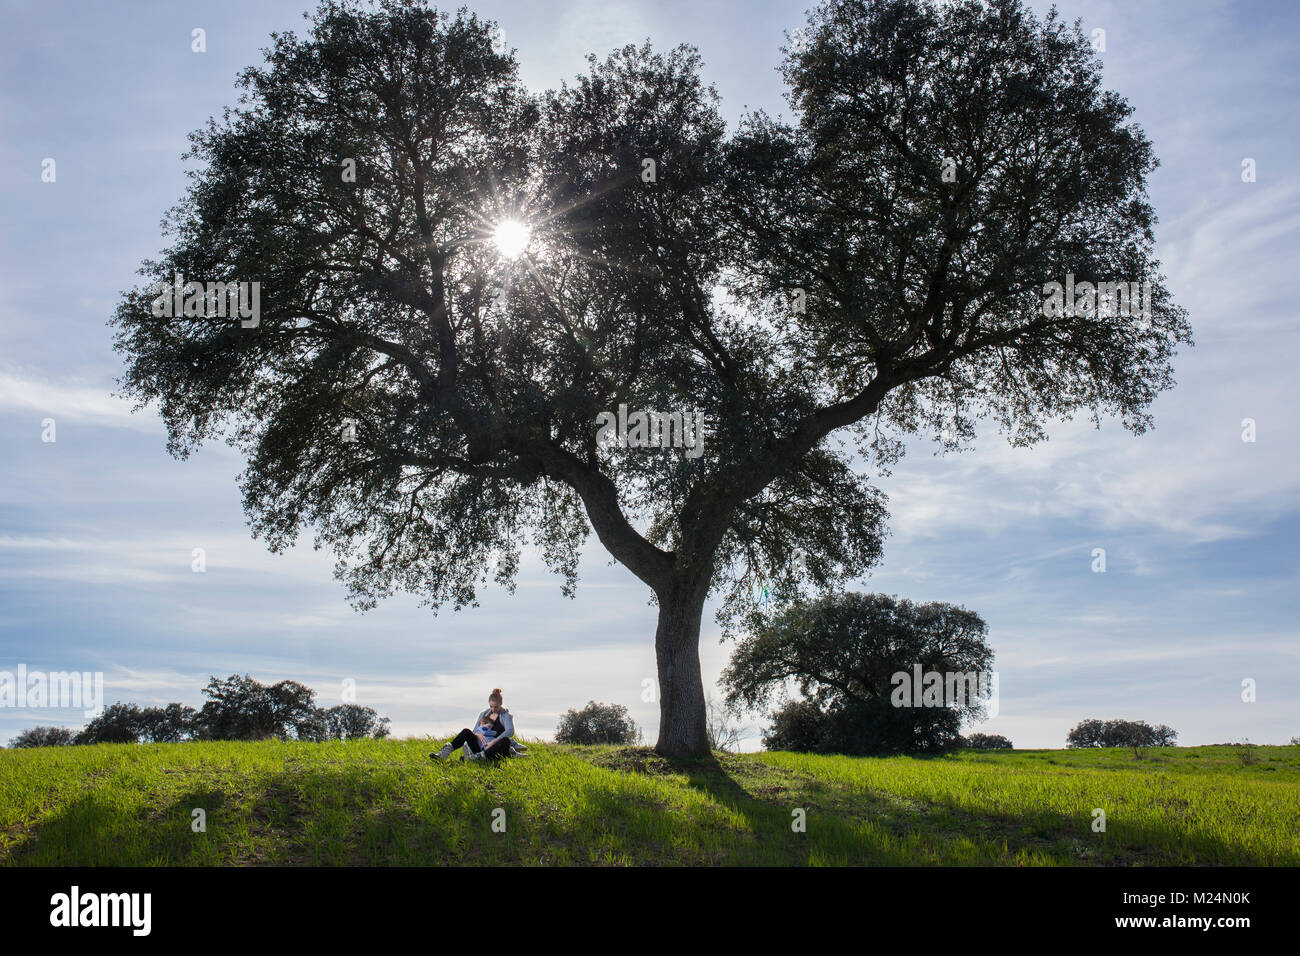 Mother rocking a child in her arms under acorn tree. Enjoying nature in family concept - Stock Image